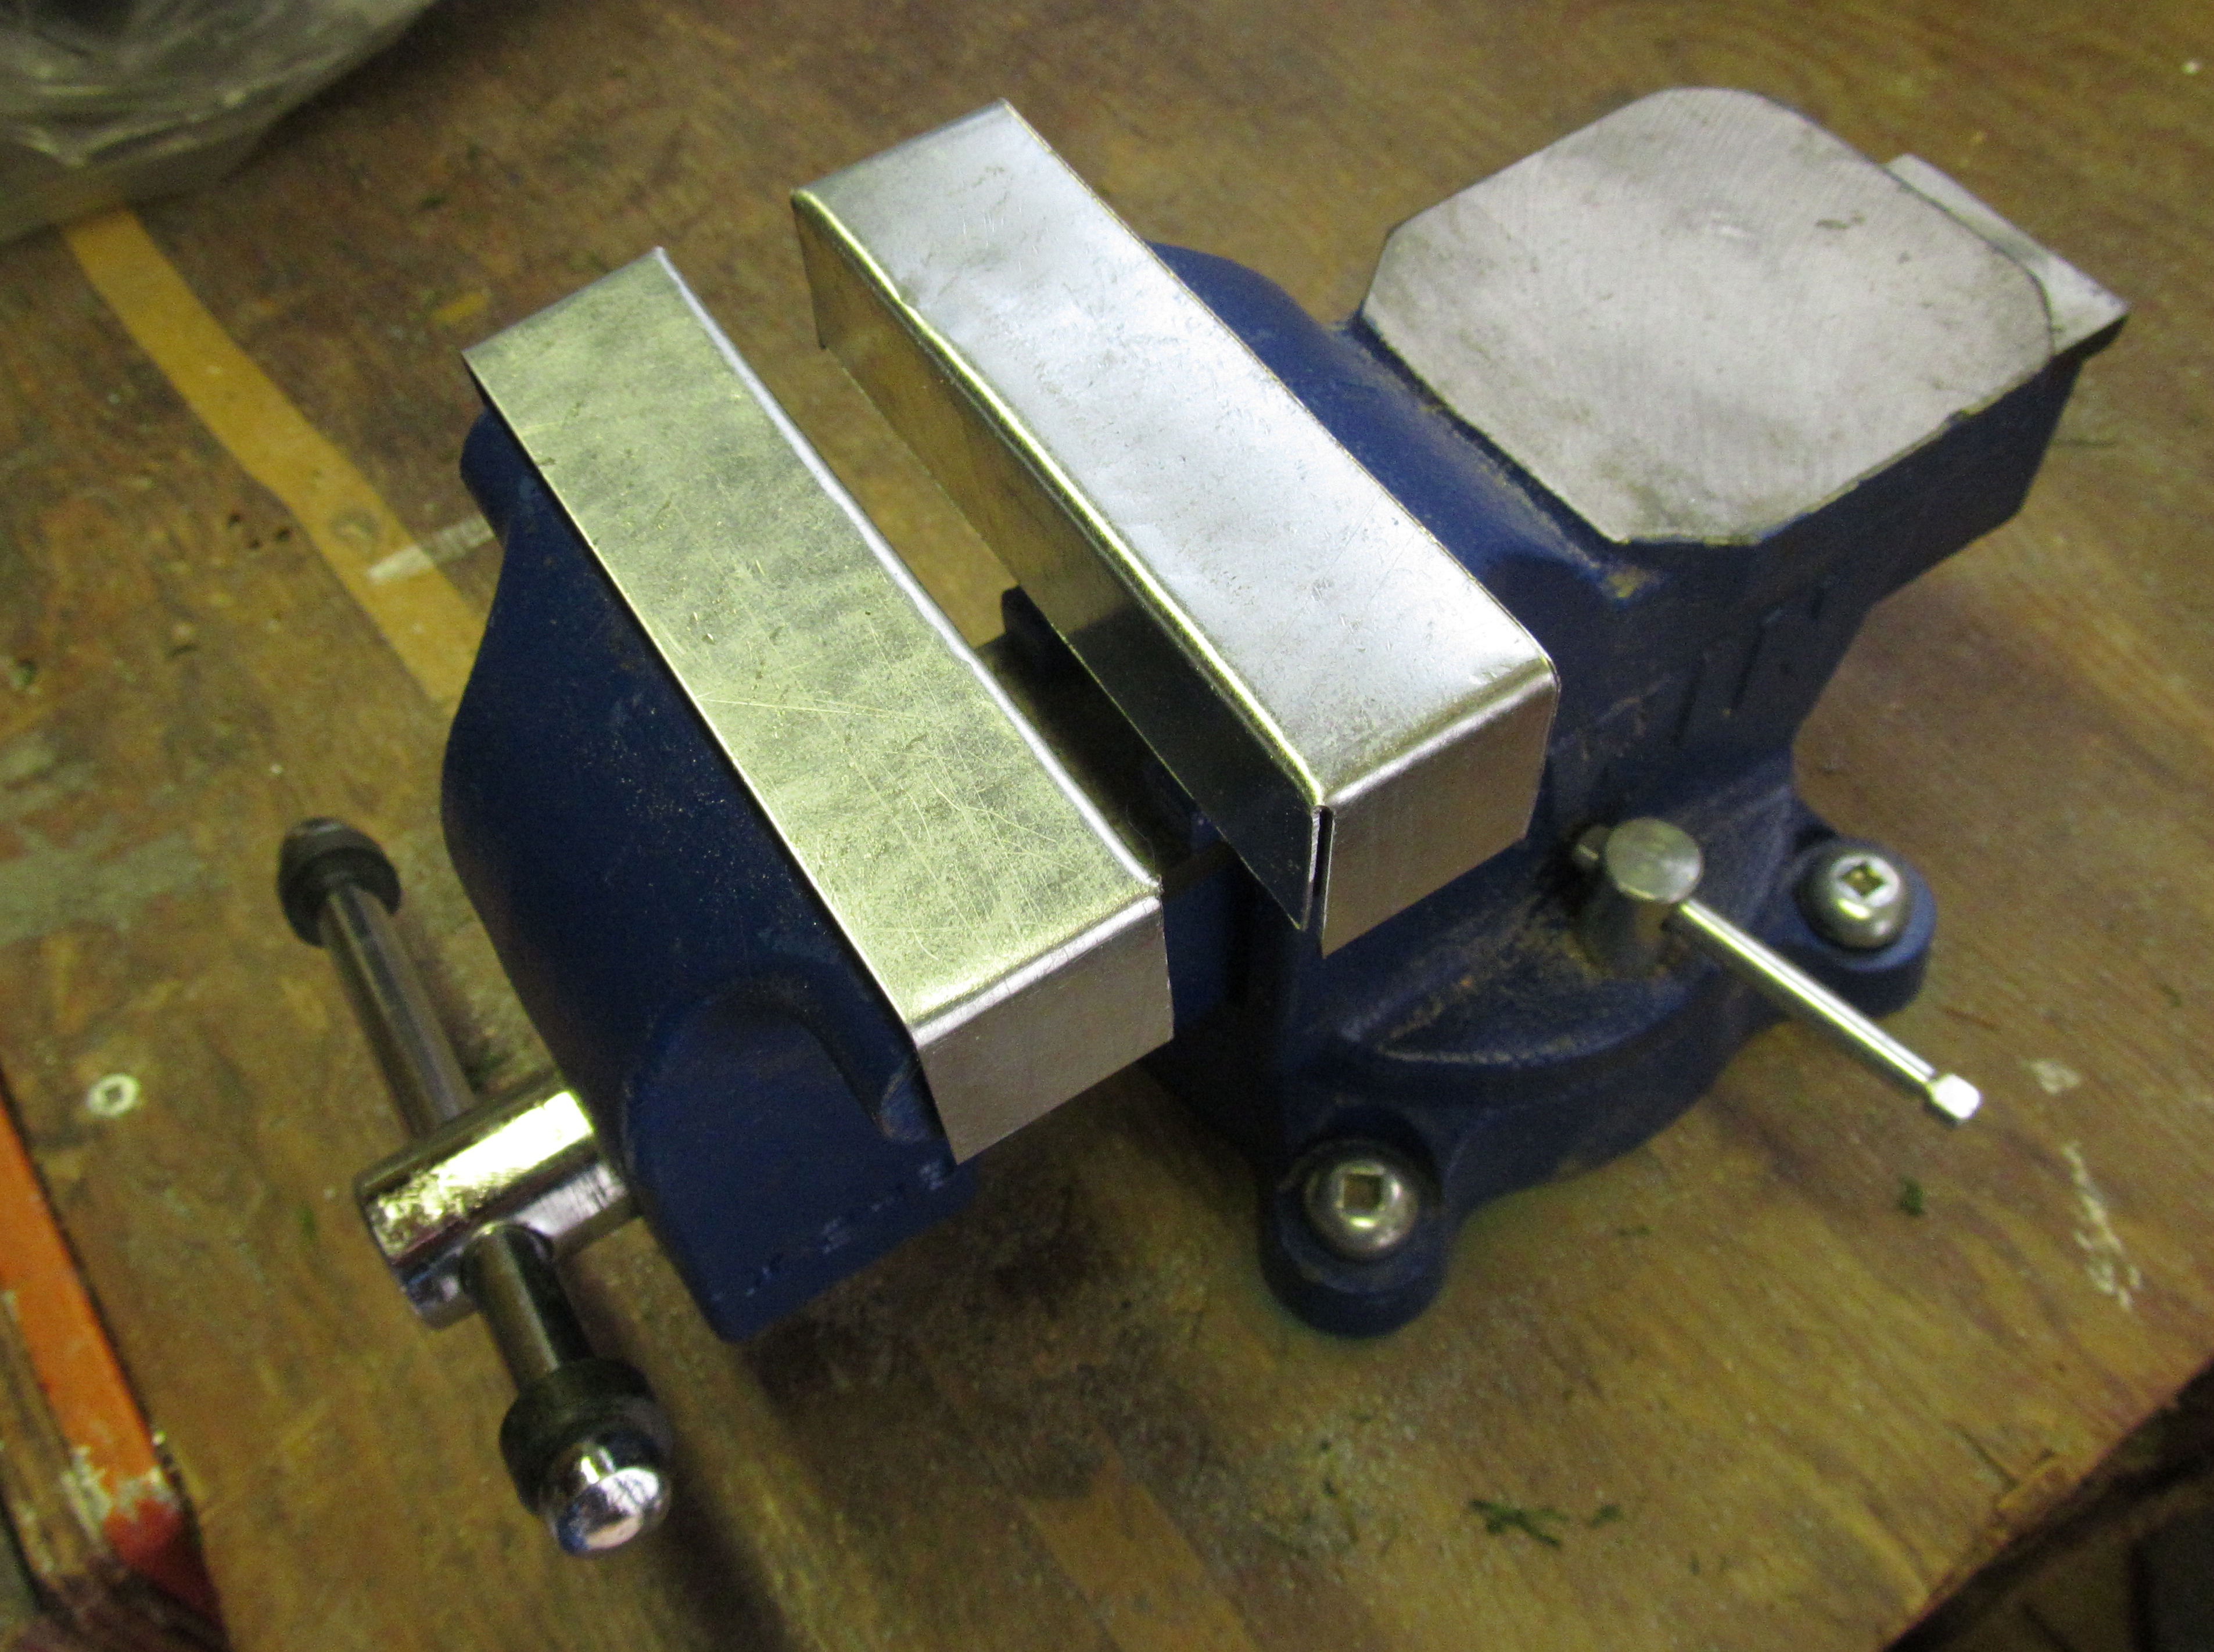 Slip-On Soft Jaws for a Vise